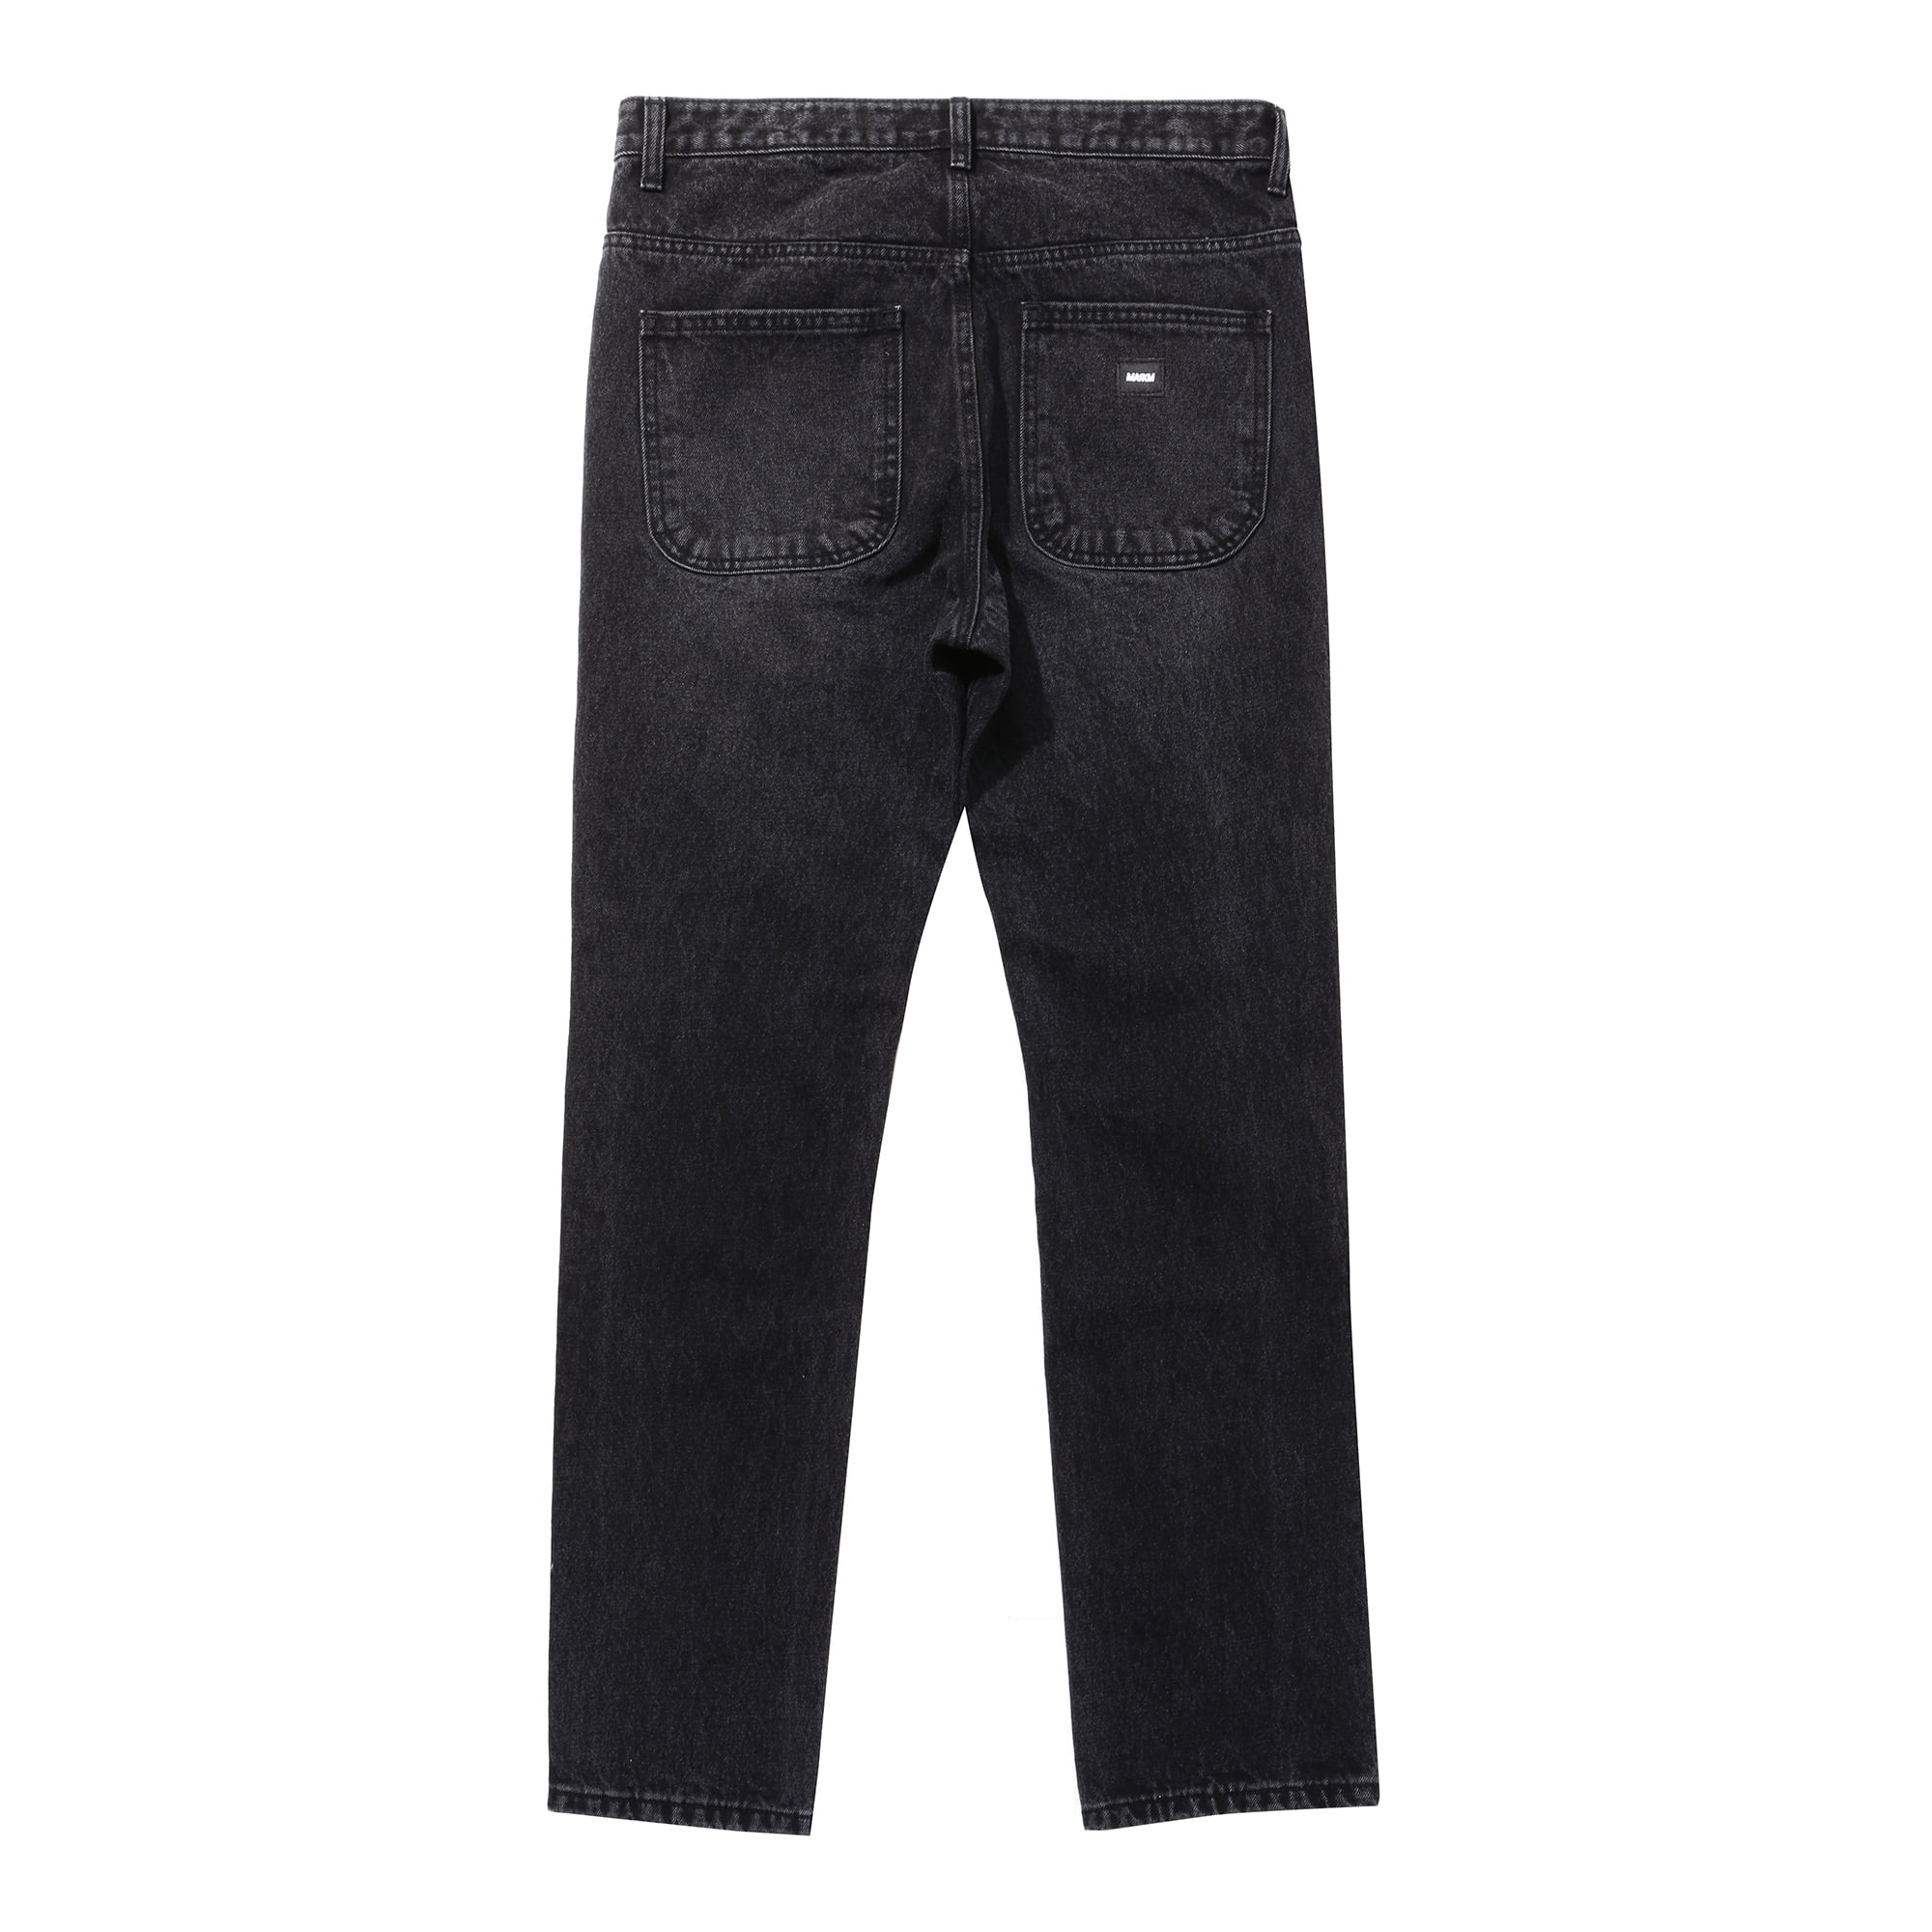 19FW MM Straight Jeans MYFAH4503